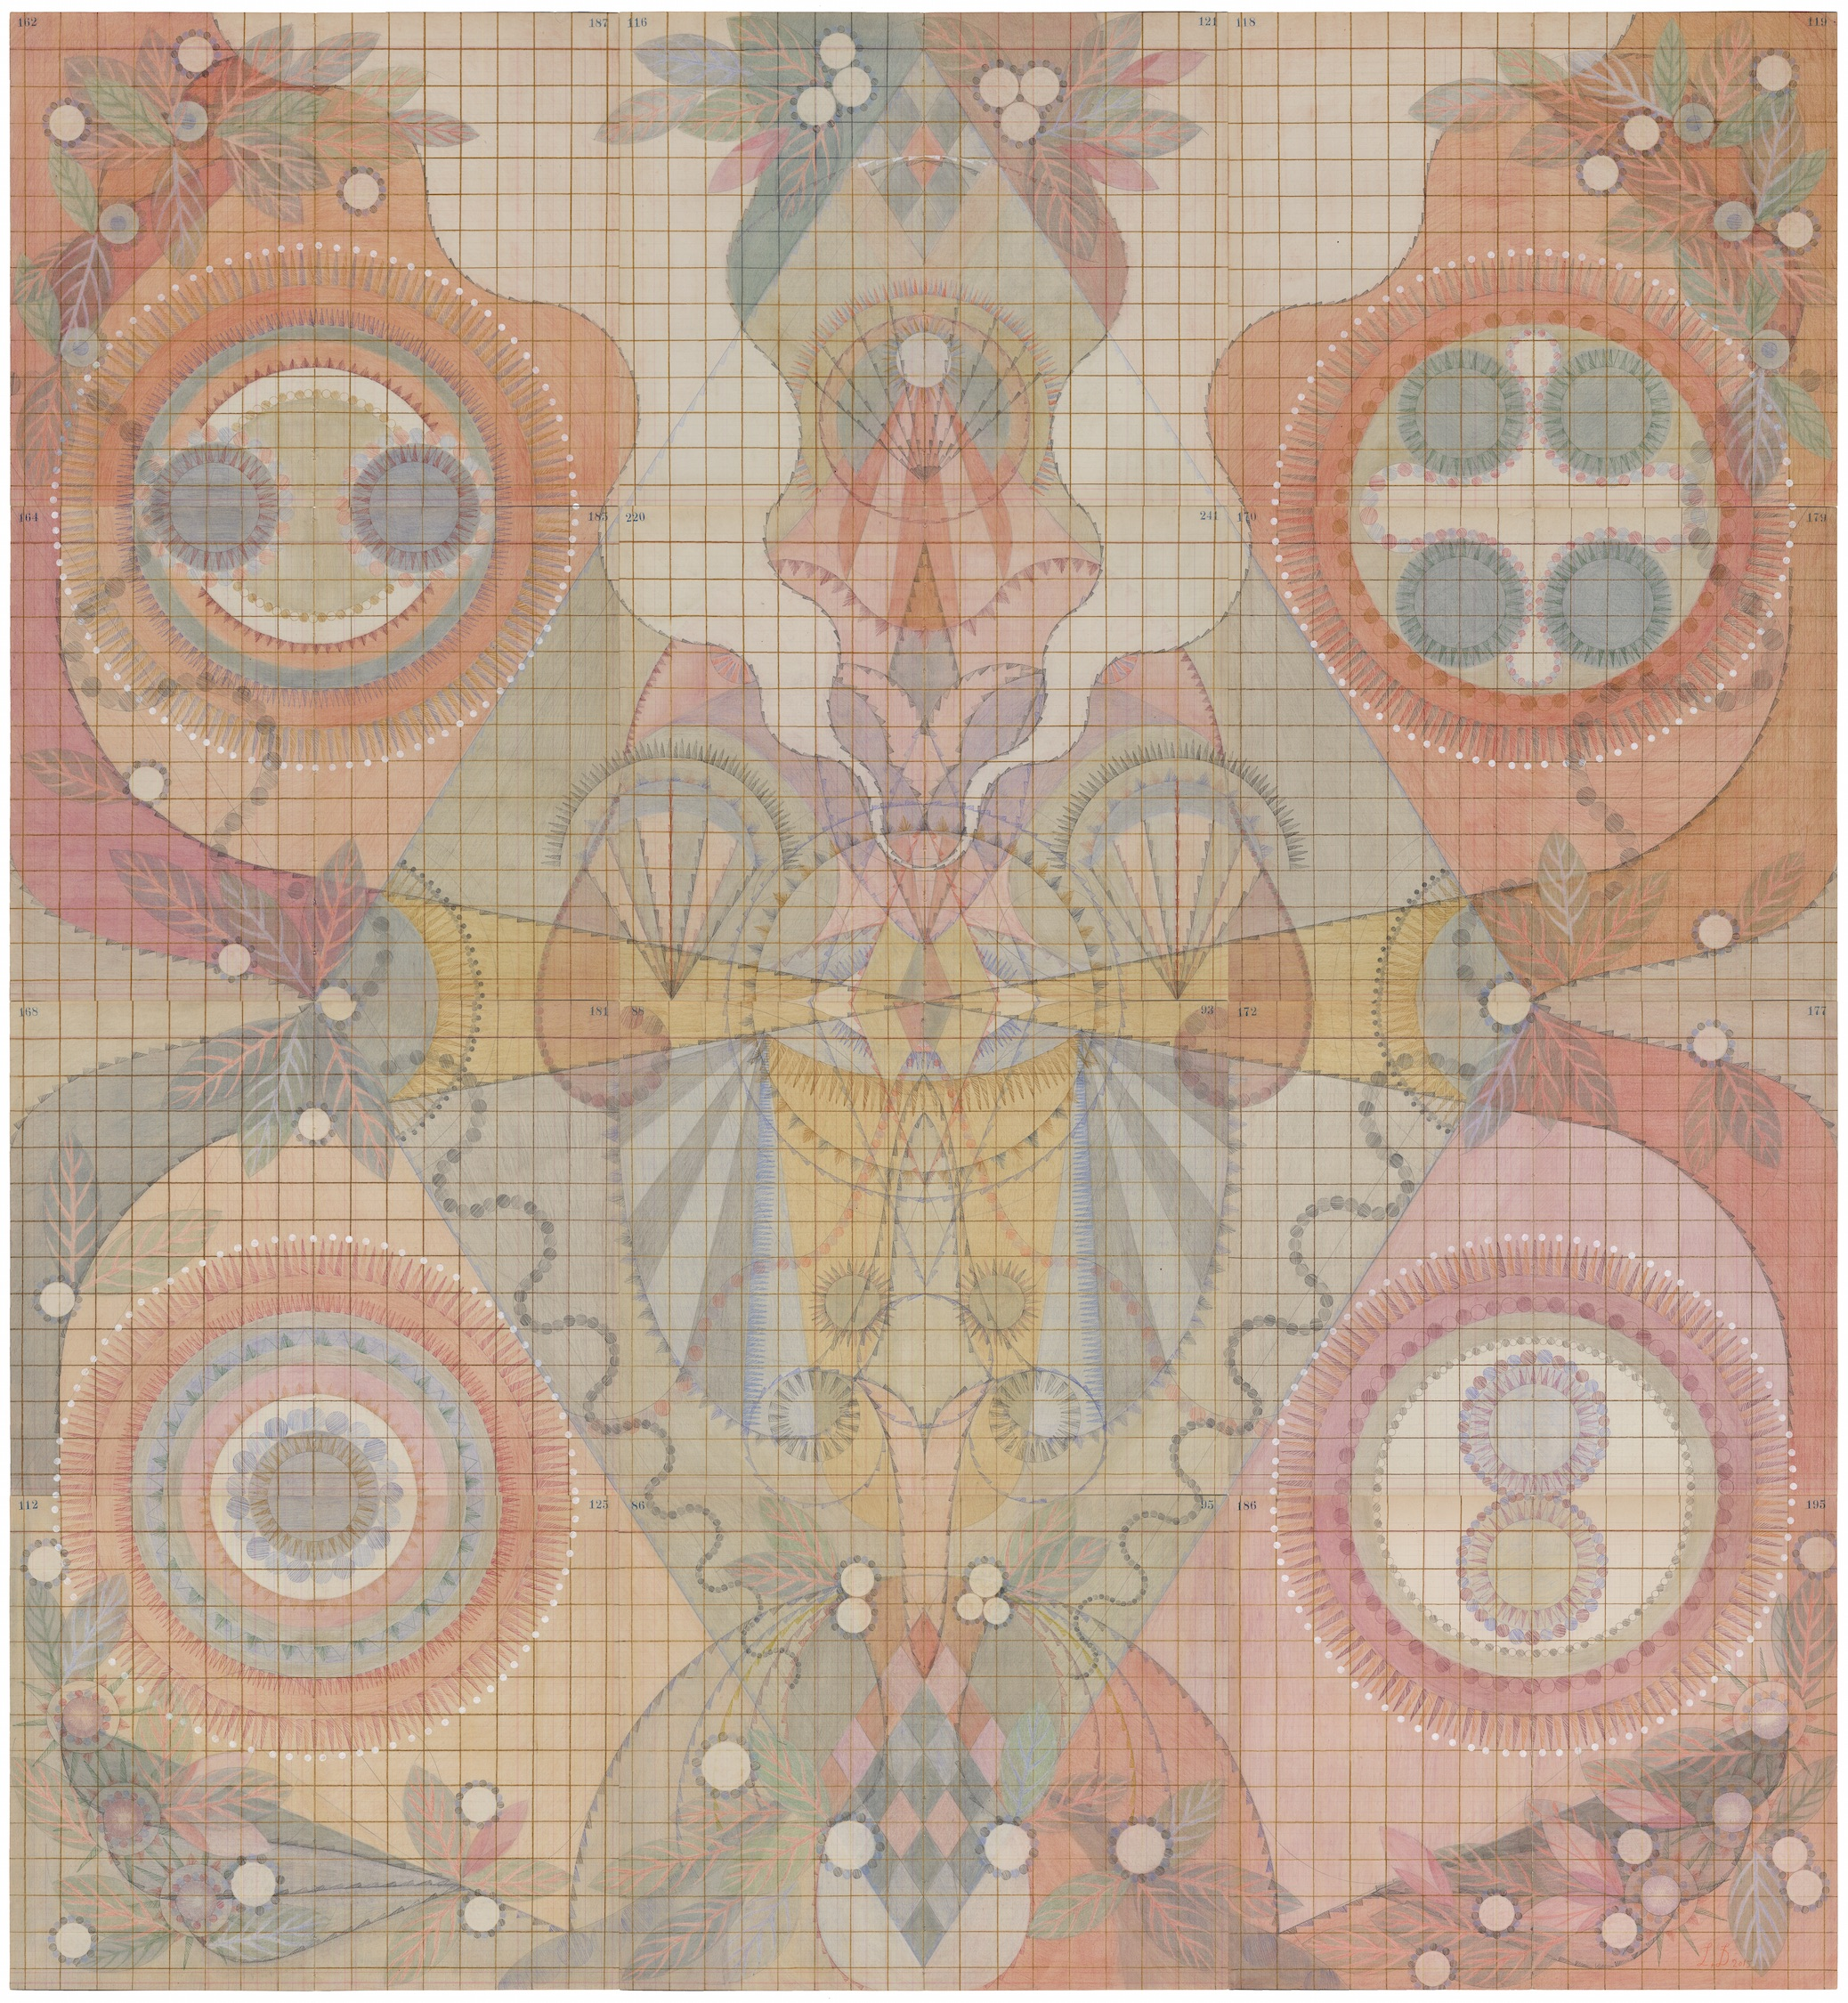 Embryo, Colored Pencil and Graphite on Antique Ledger Book Pages. 54 1/2 x 50 1/2